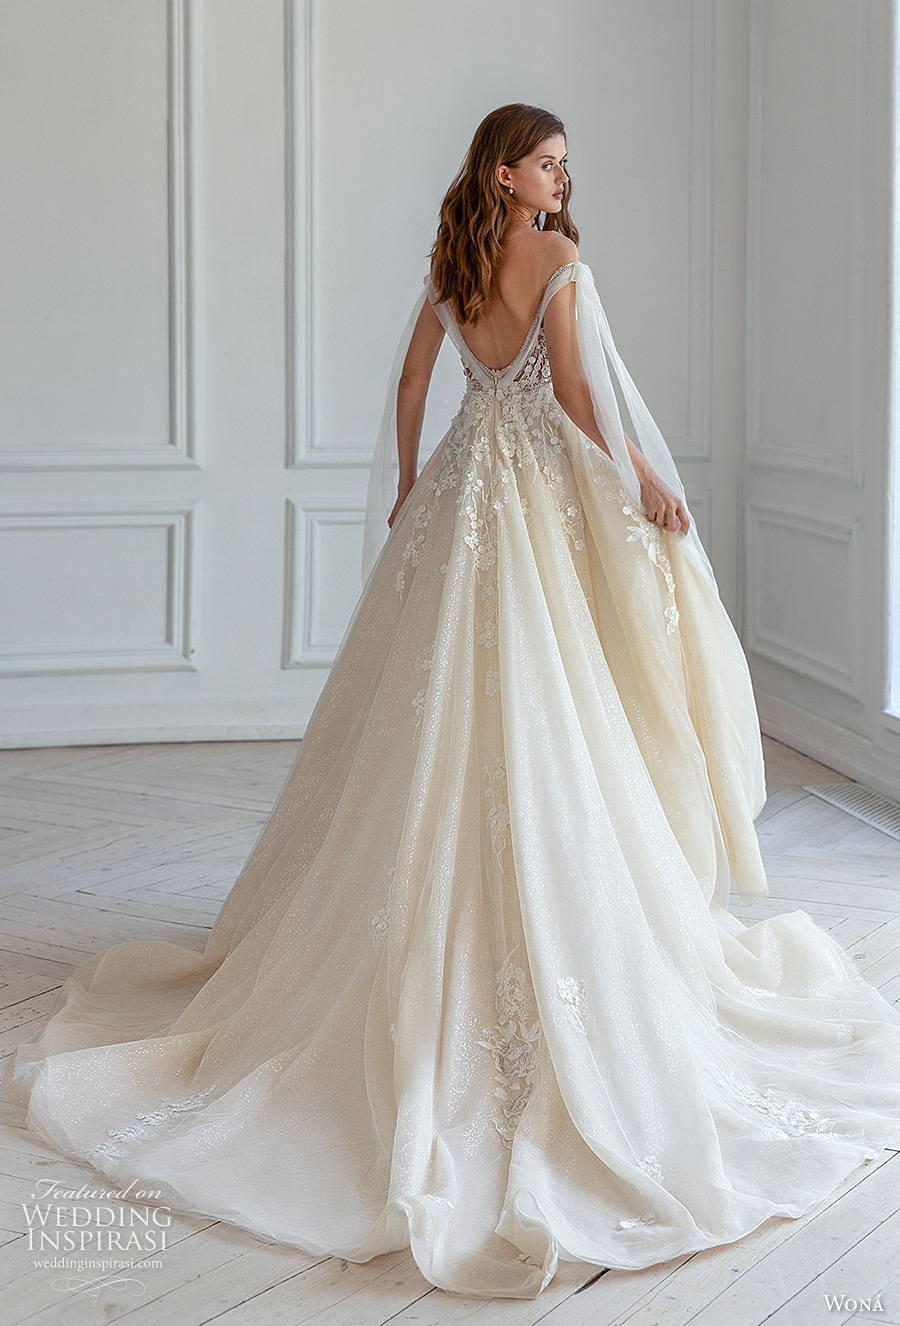 wona concept 2021 romance bridal off the shoulder v neck heavily embellished bodice romantic ivory a  line wedding dress v back chapel train (1) bv